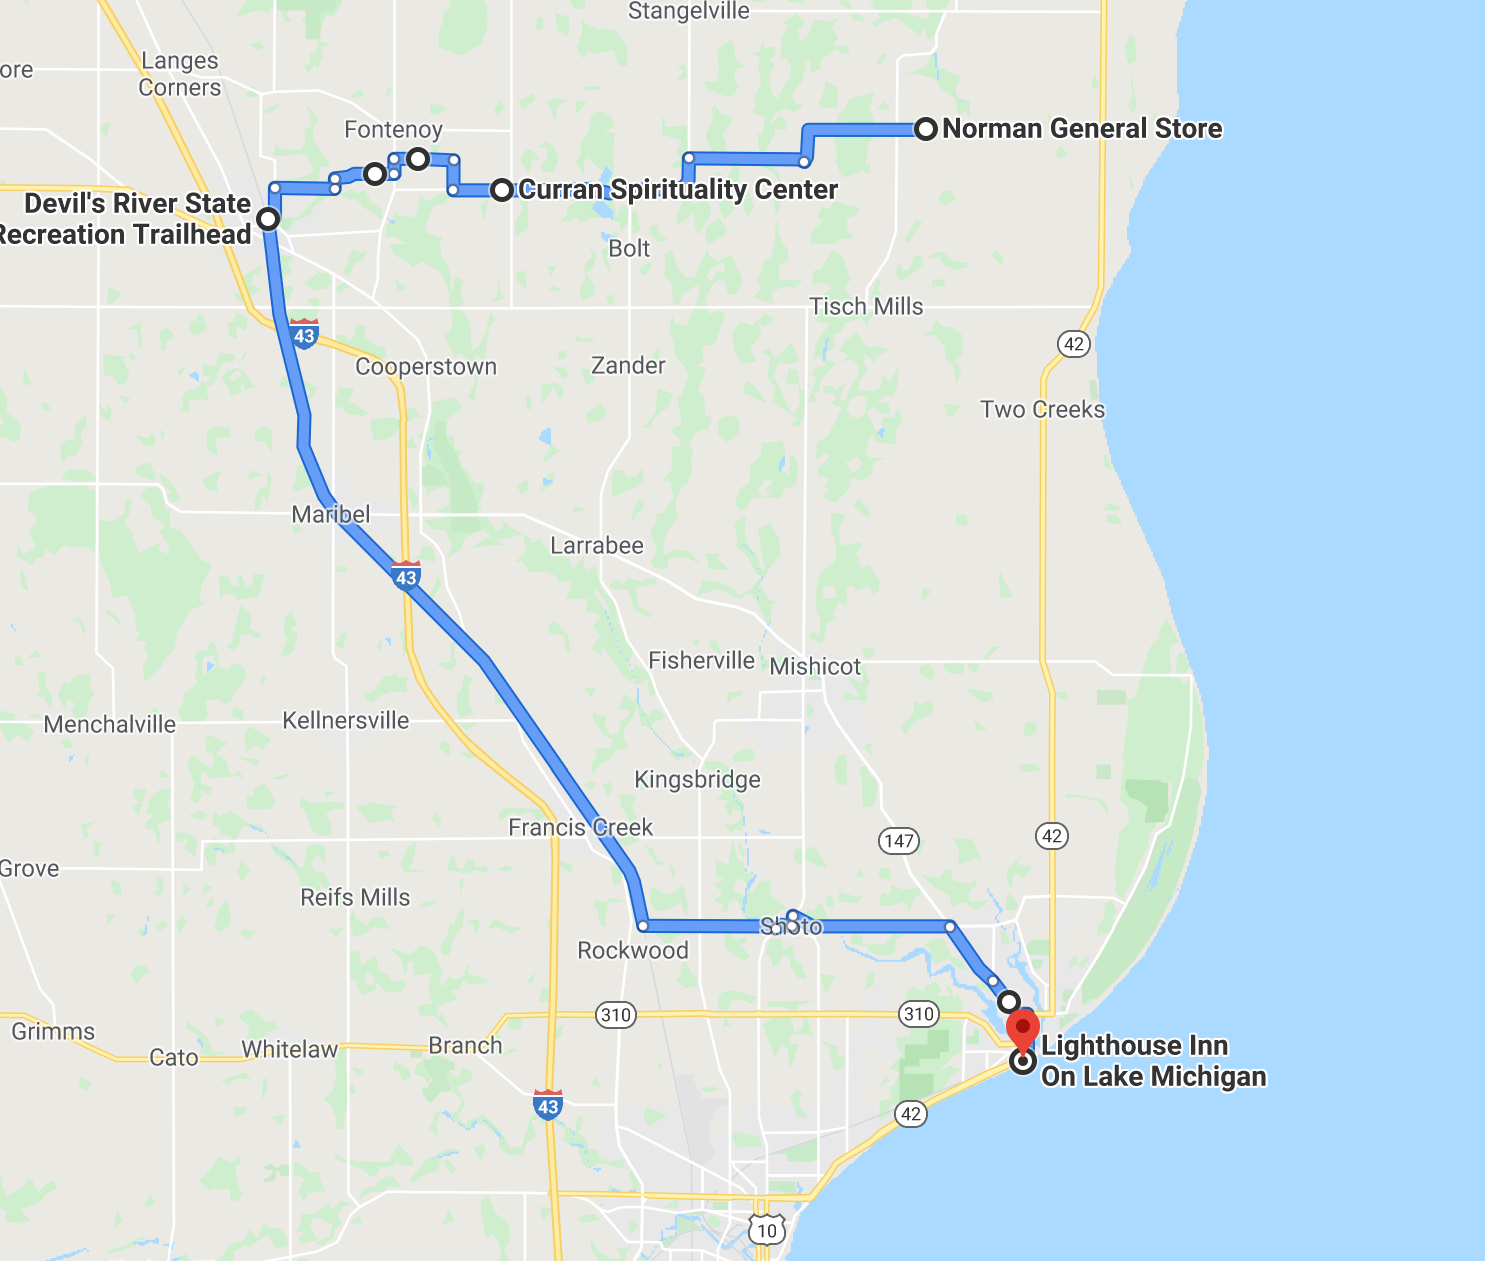 Second segment of the cycling pilgrimage